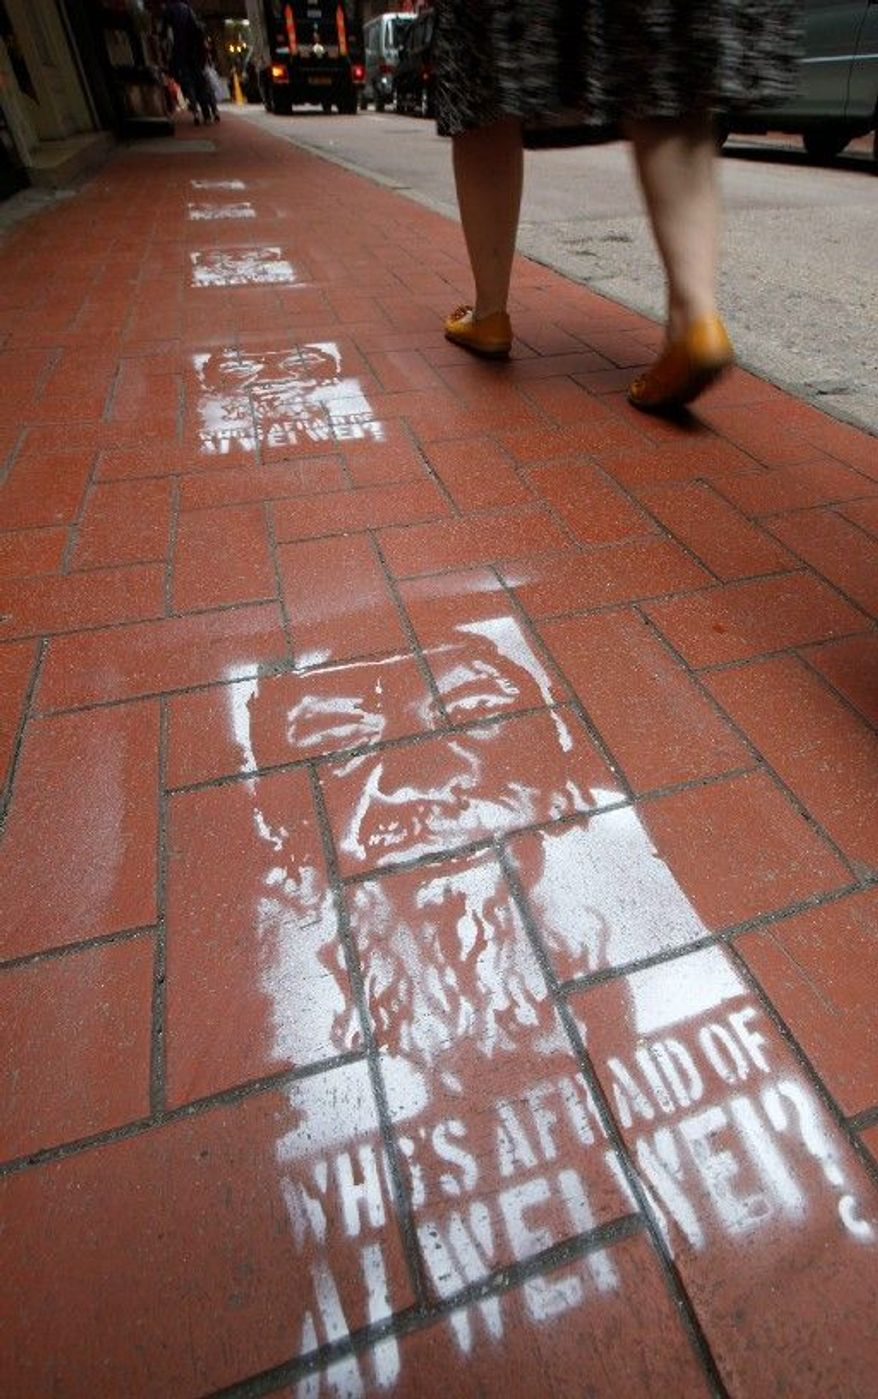 """Detained Chinese artist Ai Weiwei's likeness is sprayed on a Hong Kong sidewalk with the words, """"Who's afraid of Ai Weiwei?"""" The social activist was taken into police custody April 3 and is being investigated for allegedly evading his taxes, a Hong Kong newspaper reported. (Associated Press)"""